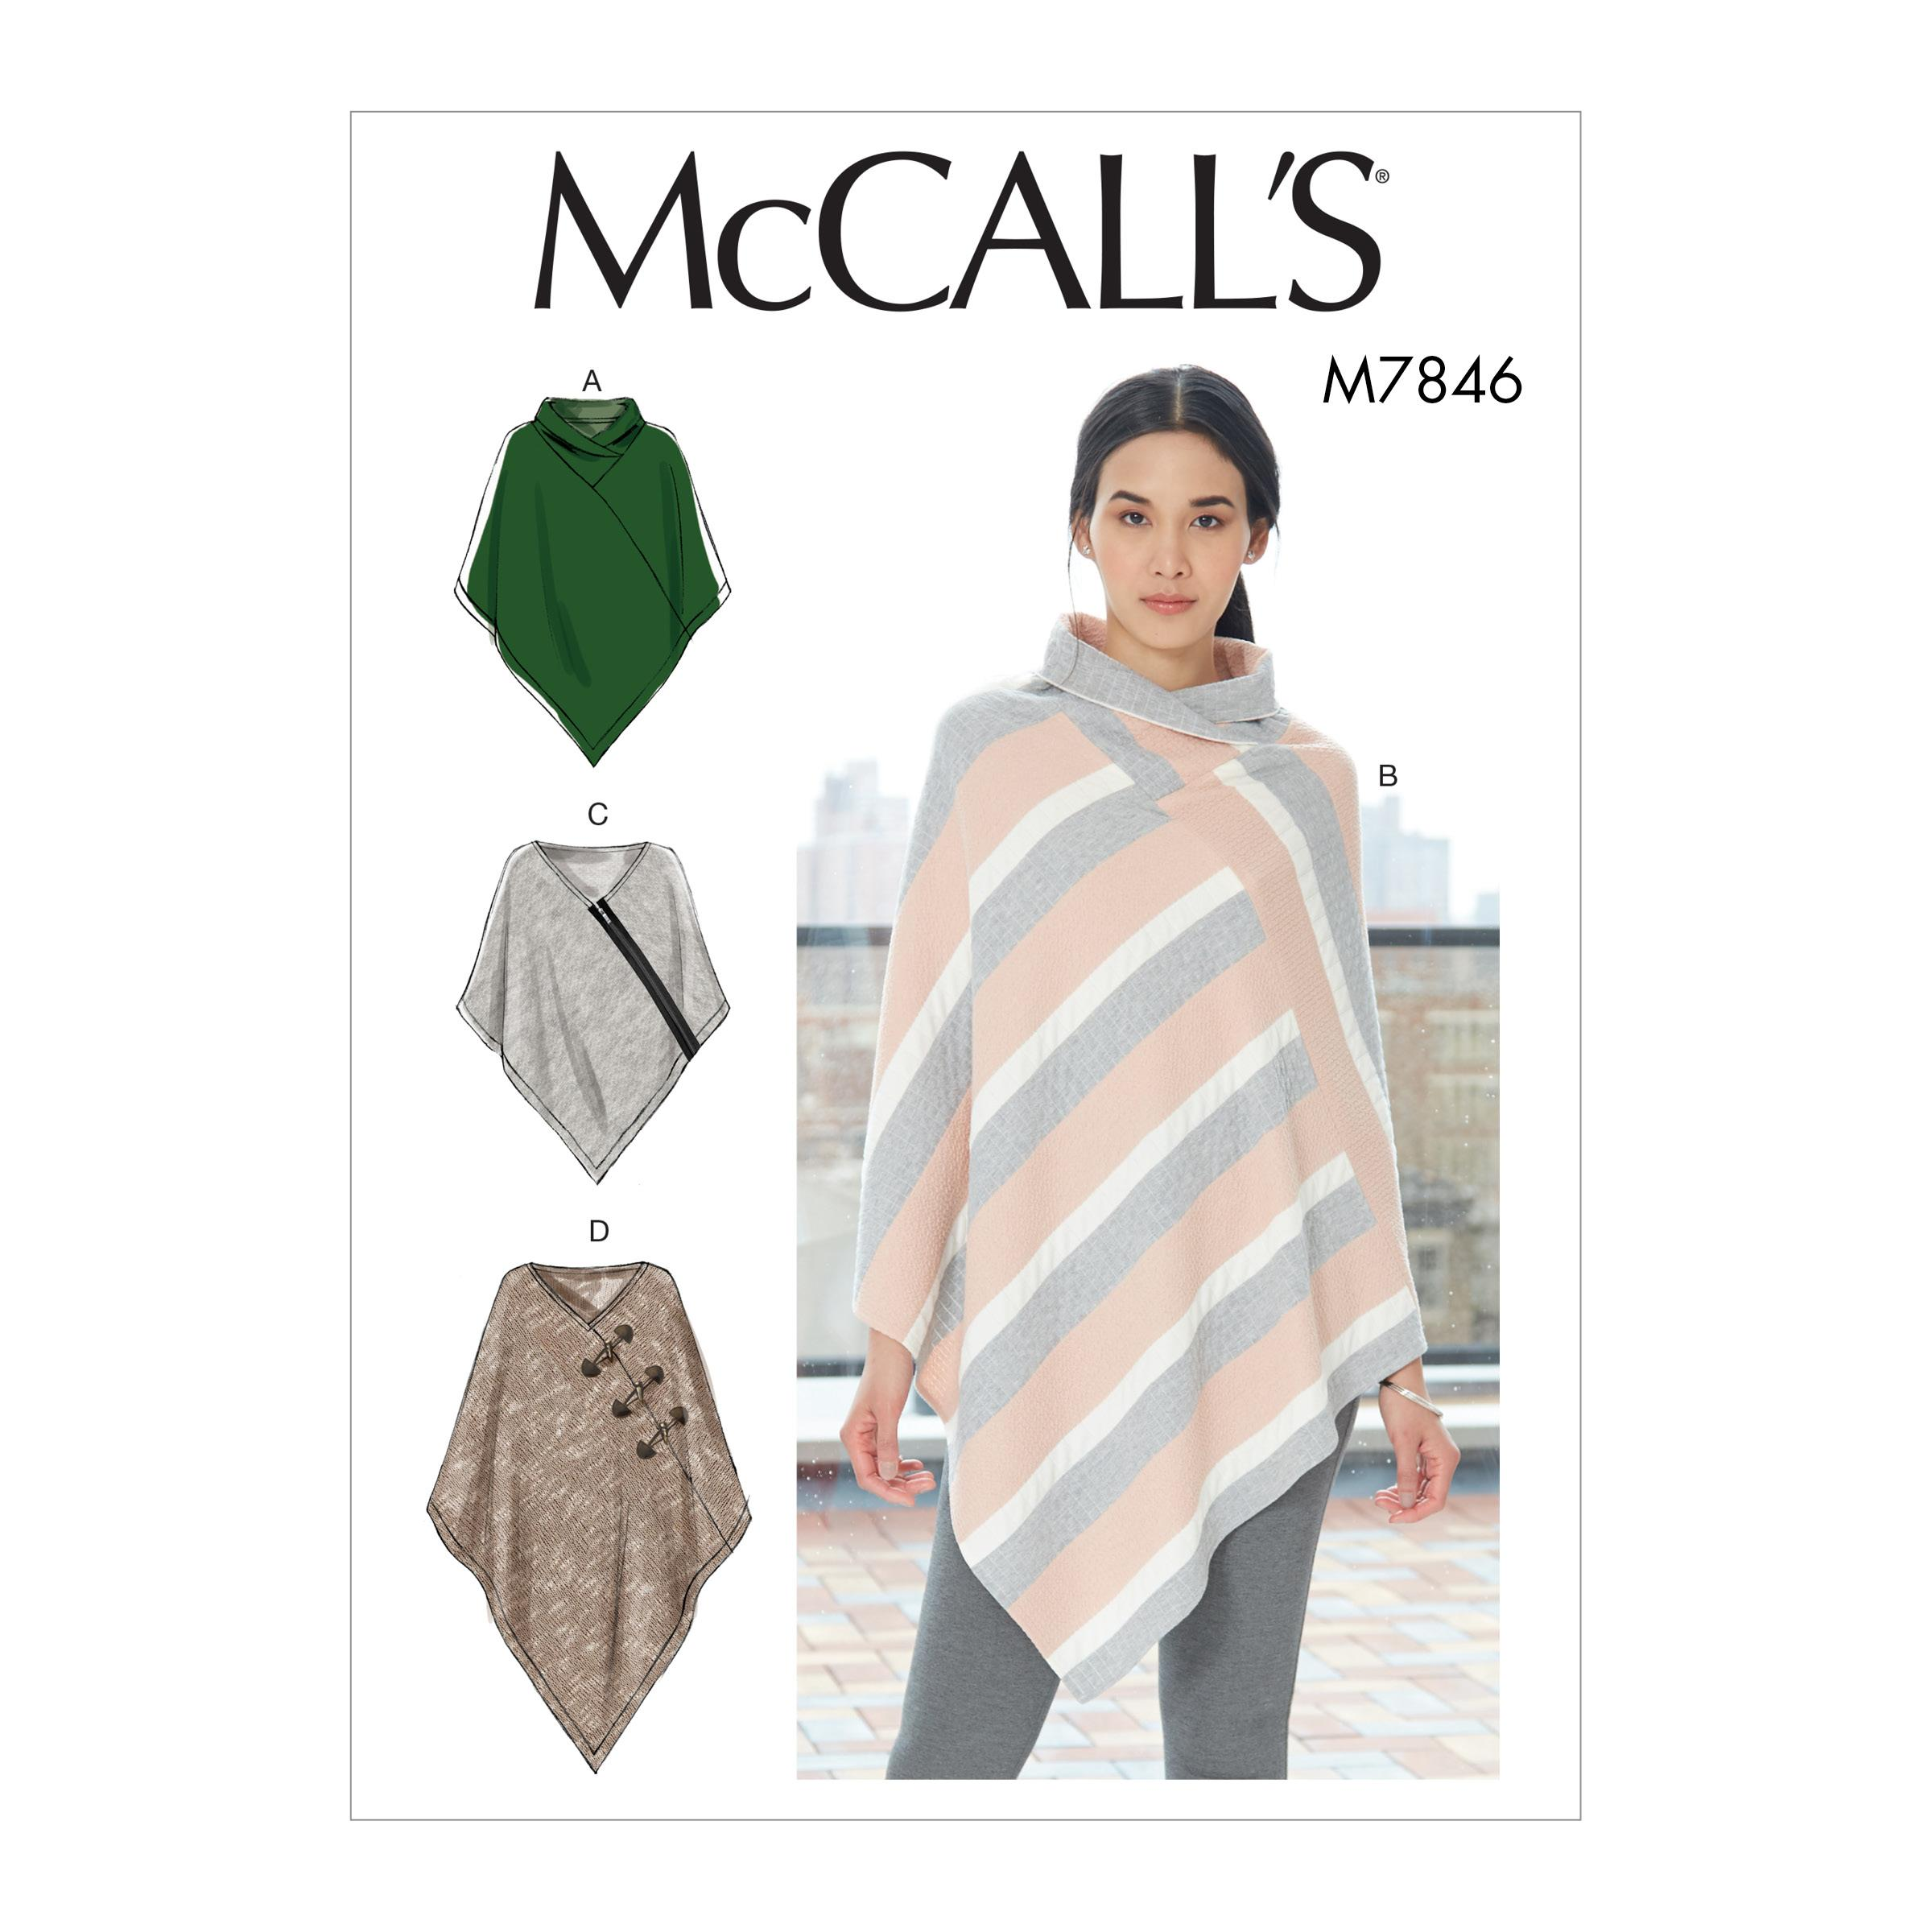 McCalls M7846 Misses Coats, Capes & Ponchos